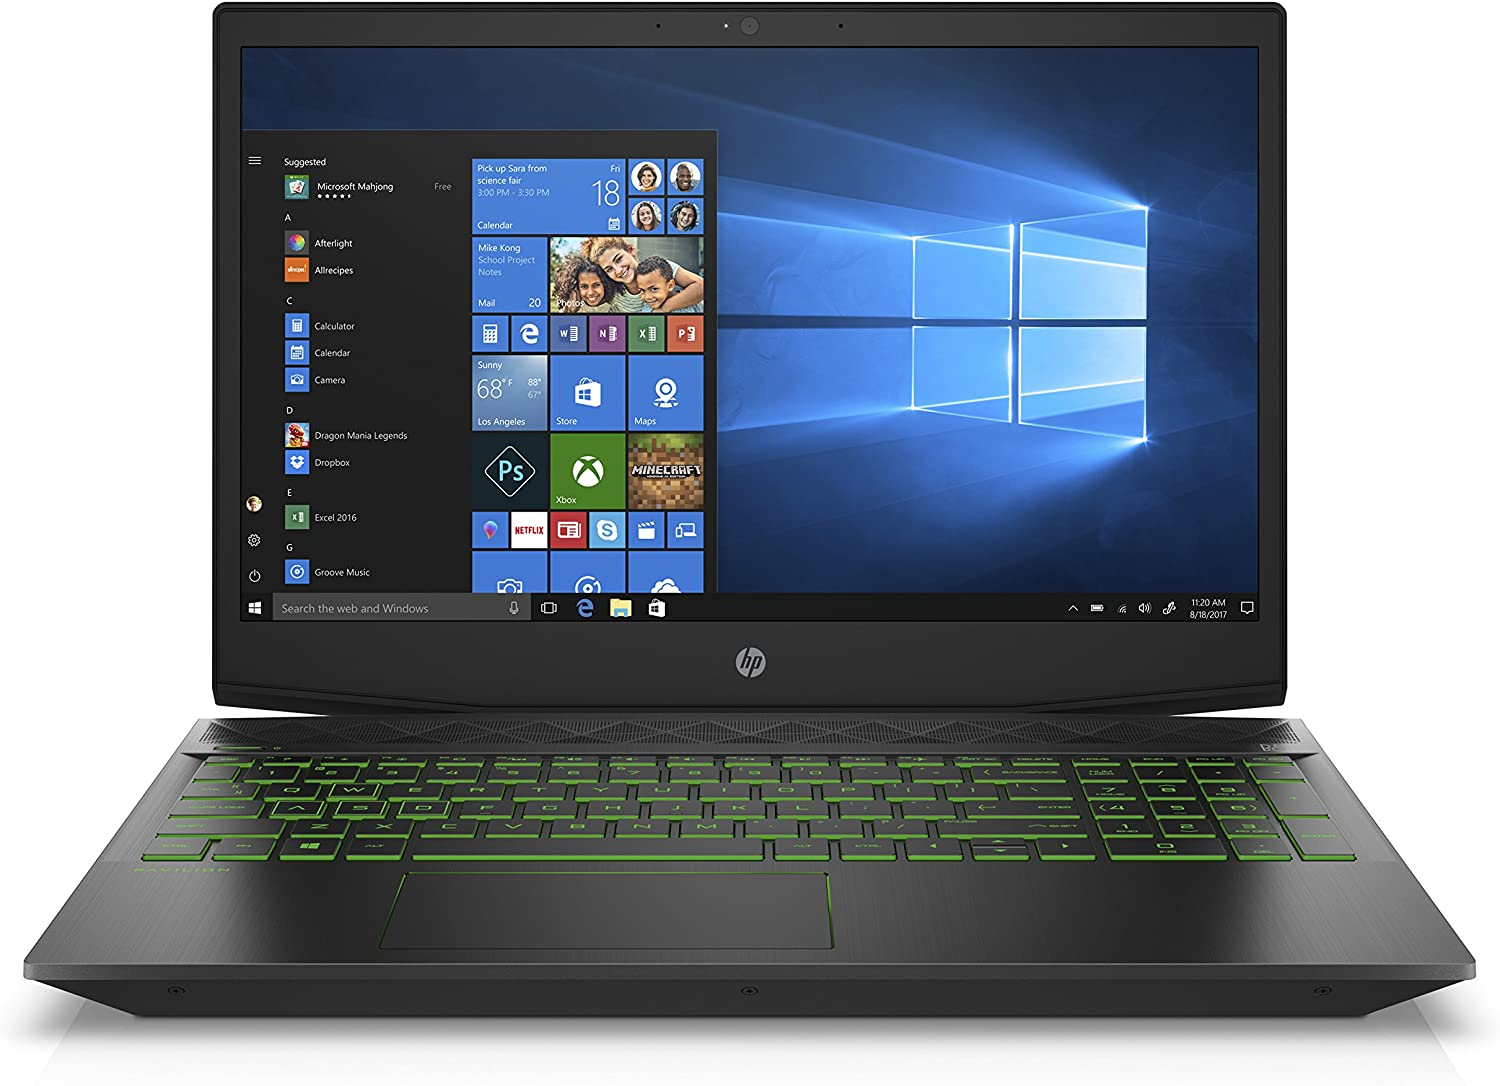 HP Pavilion Gaming 15-inch Laptop, Intel Core i5-8300H Processor, NVIDIA GeForce GTX 1050 Ti 4 GB, 8 GB RAM, 1 TB hard drive and 128 GB SSD, Windows 10 Home (15-cx0030nr, Black)